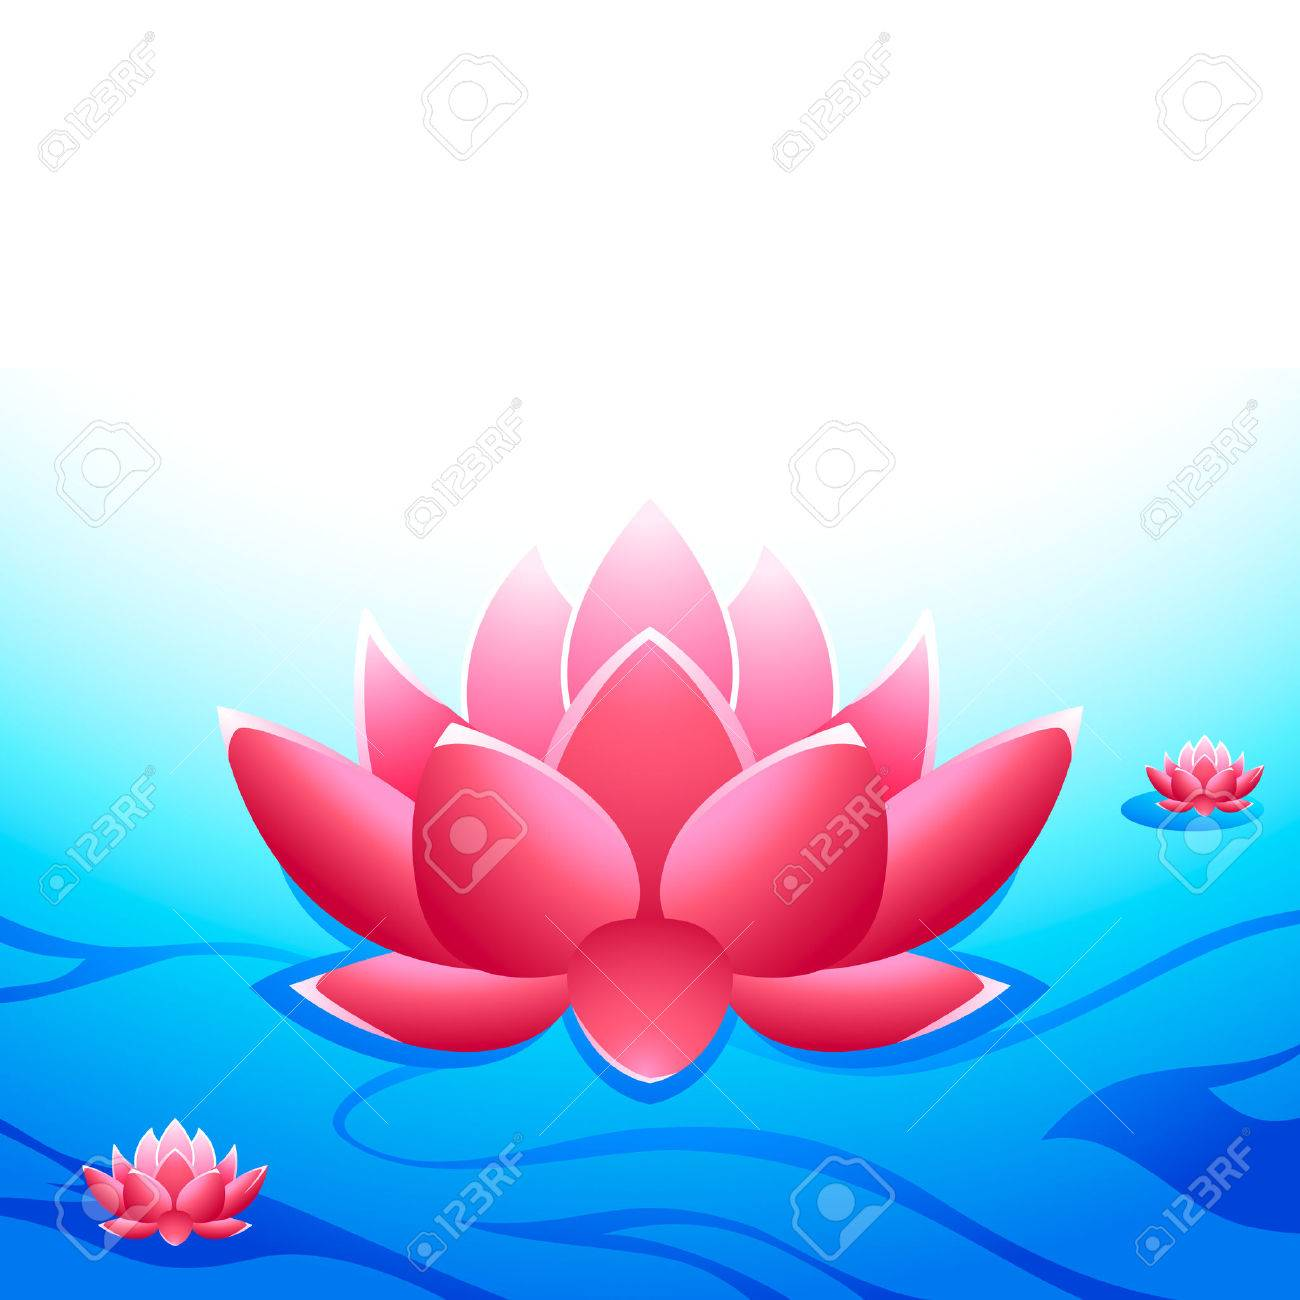 35254 hinduism cliparts stock vector and royalty free hinduism hinduism sacred lotuses at the heavens garden dhlflorist Gallery